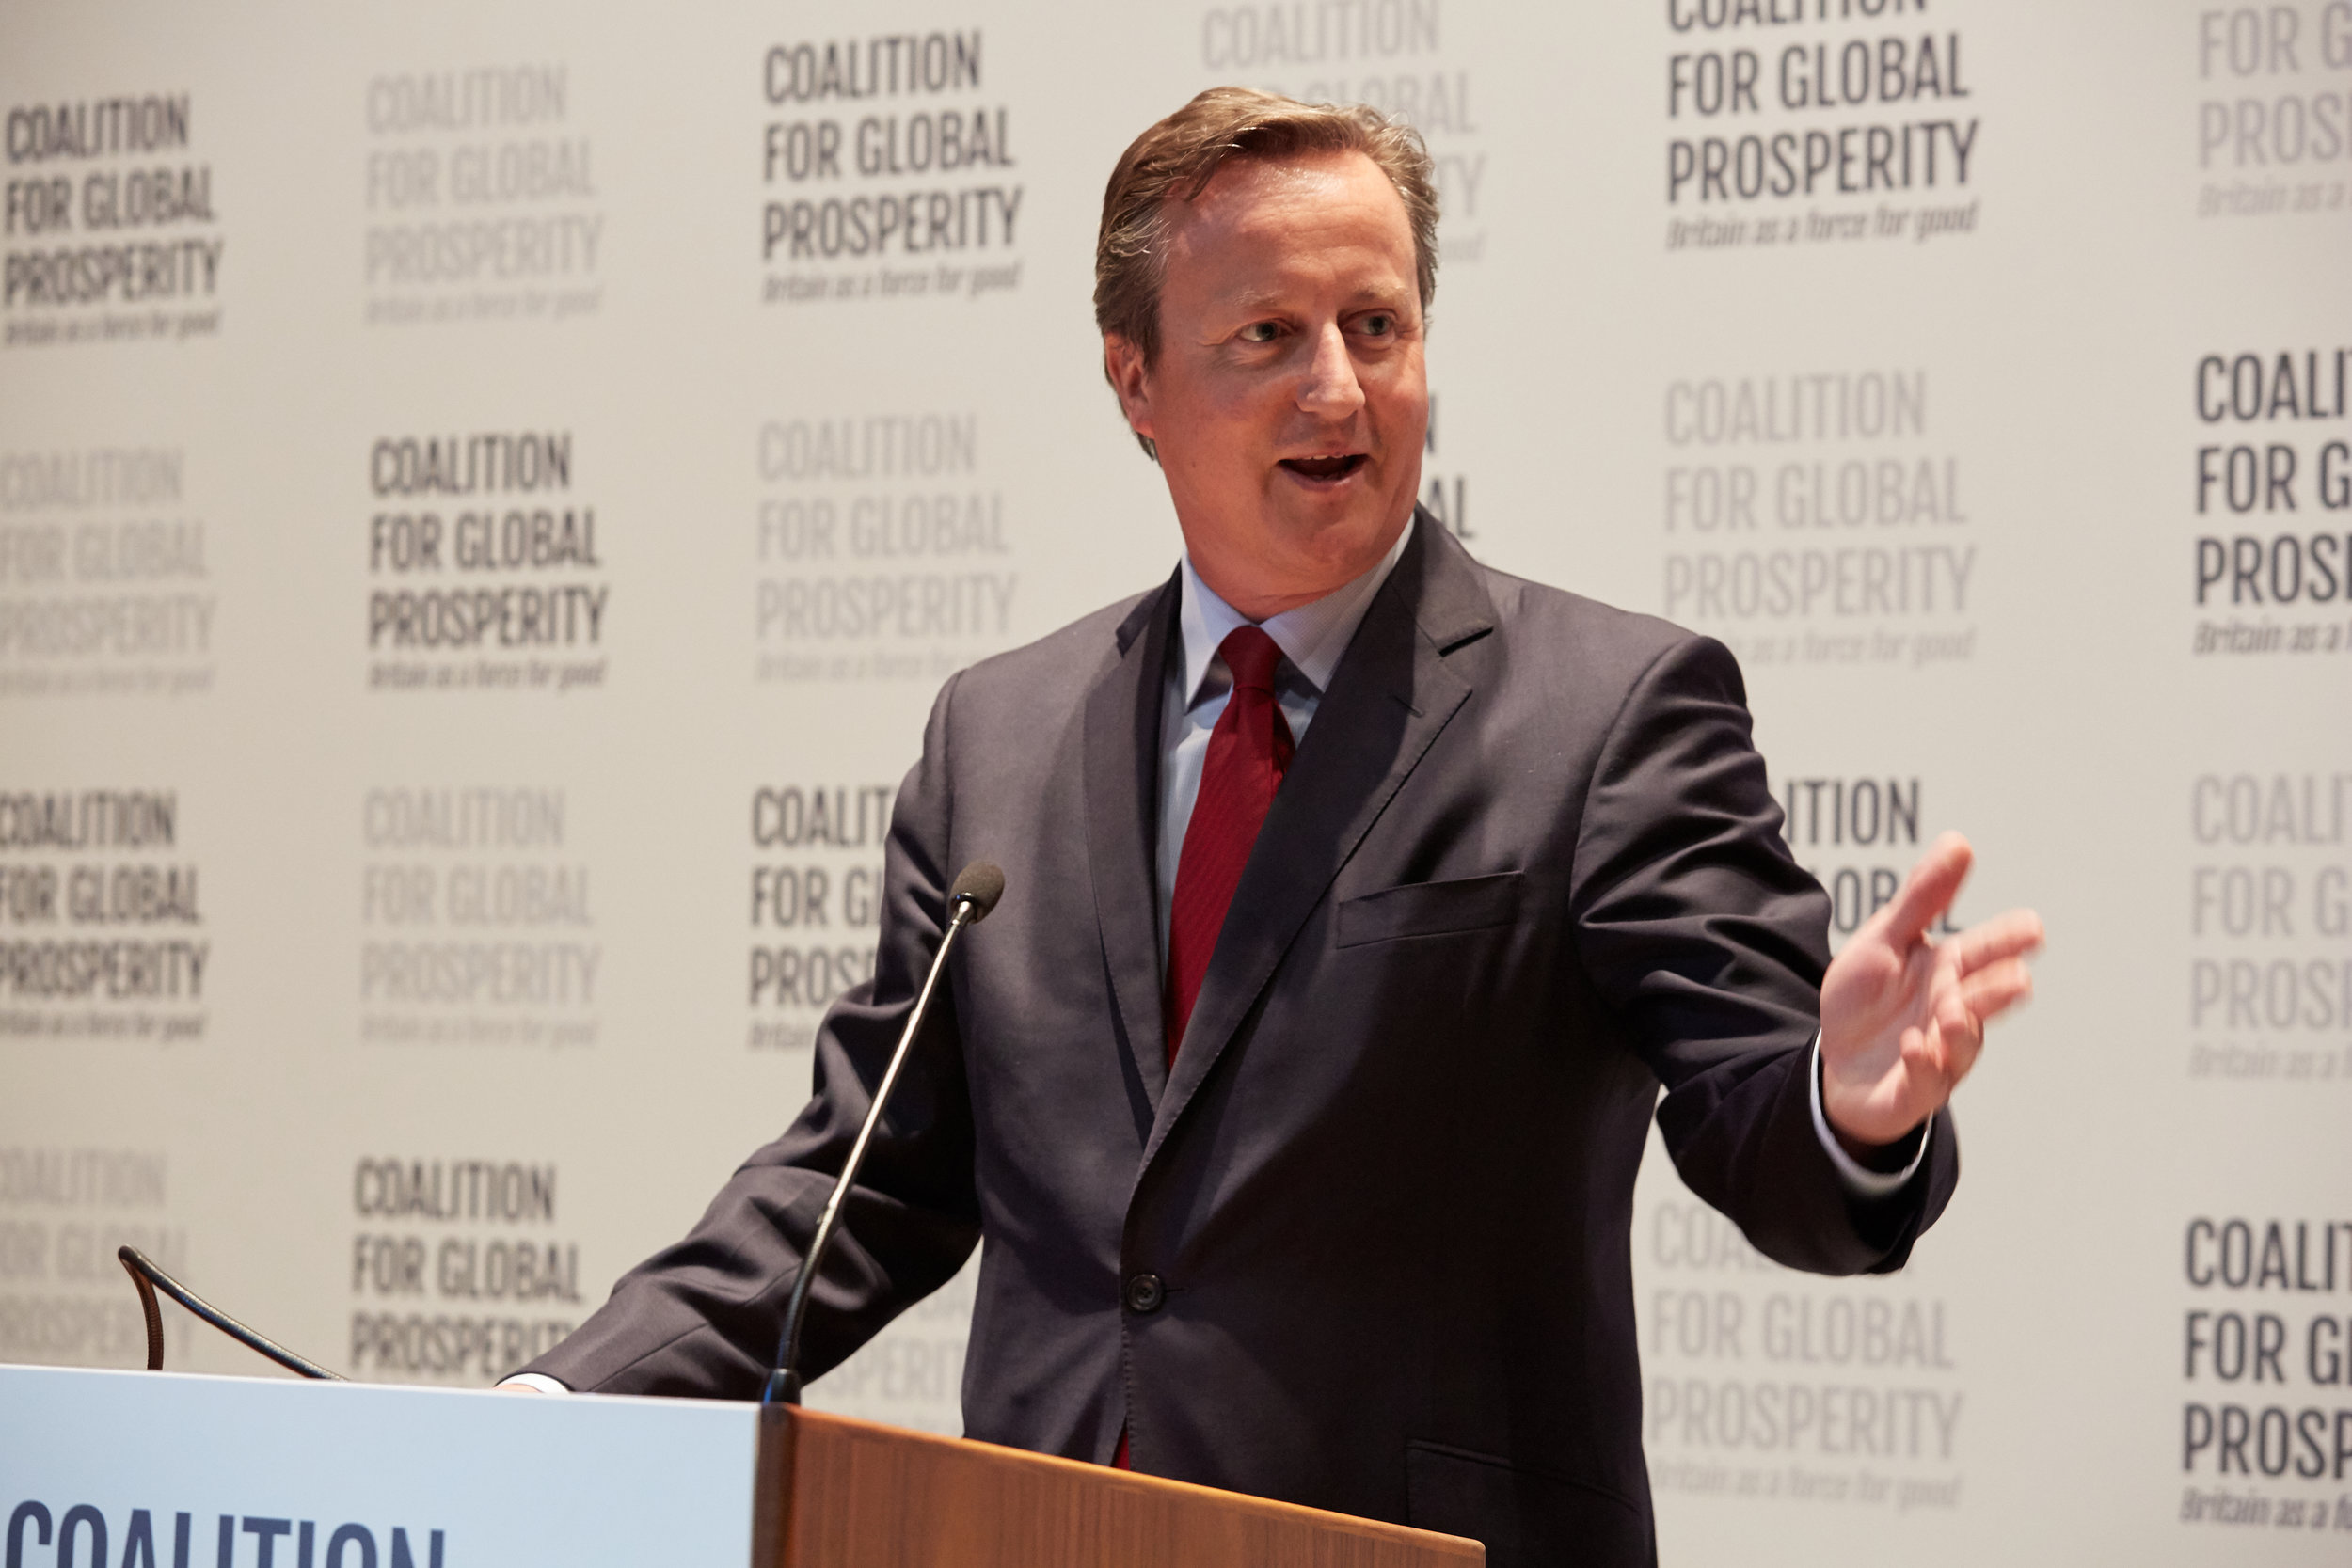 Former UK Prime Minister The Rt Hon David Cameron